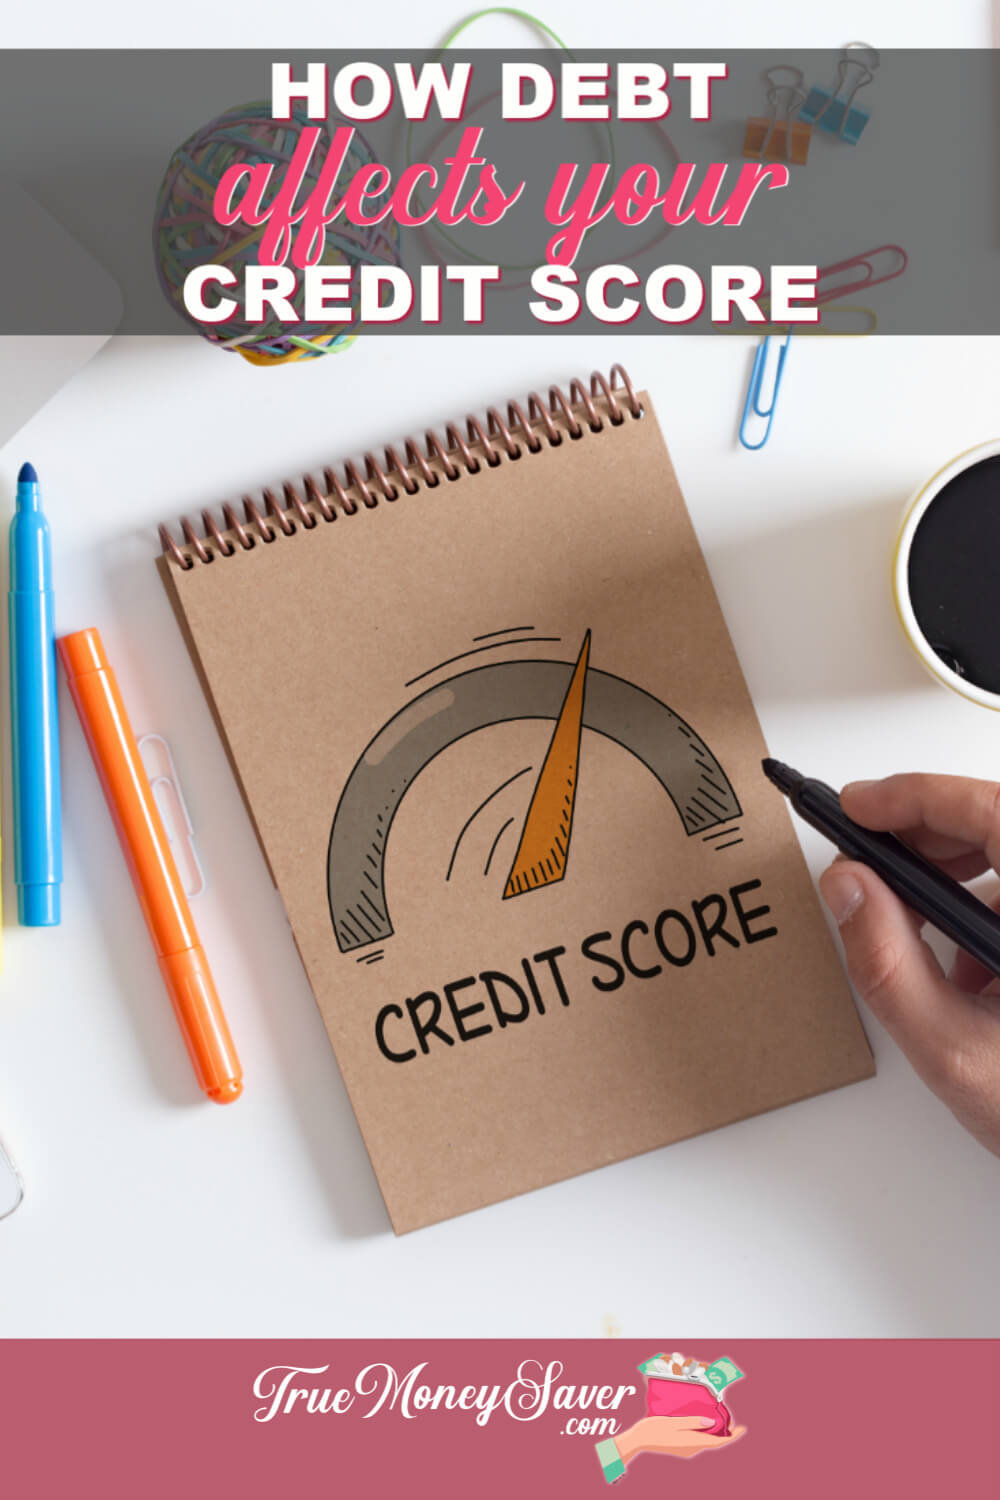 How Debt Affects Your Credit Score